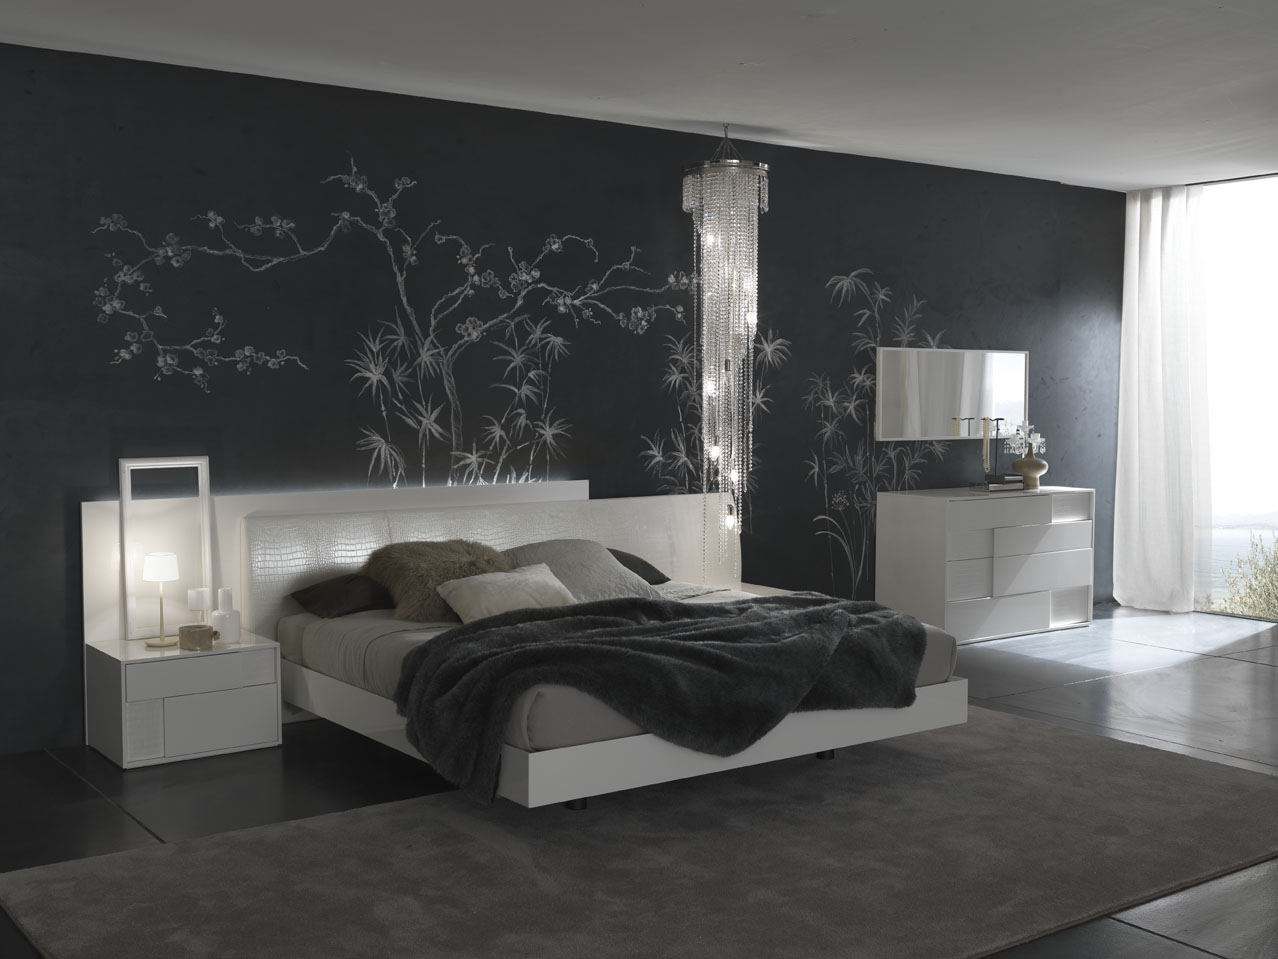 Bedroom decorating ideas from evinco Room design site